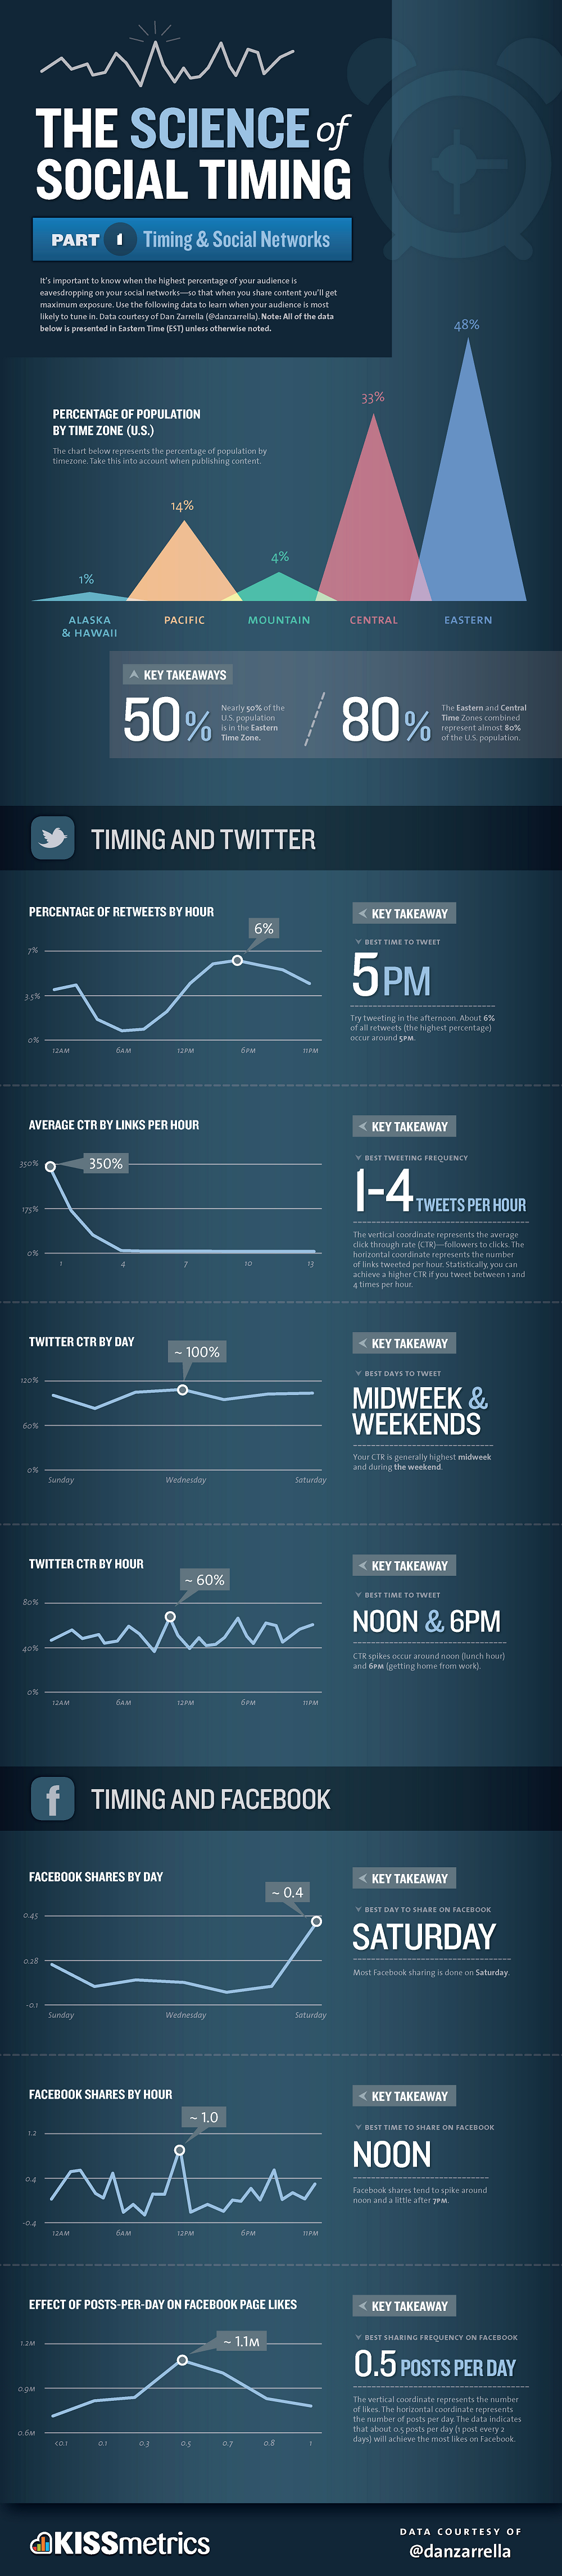 science of social timing part 1 Whens the best time to Tweet? How often to post to Facebook? This infographic tells you.